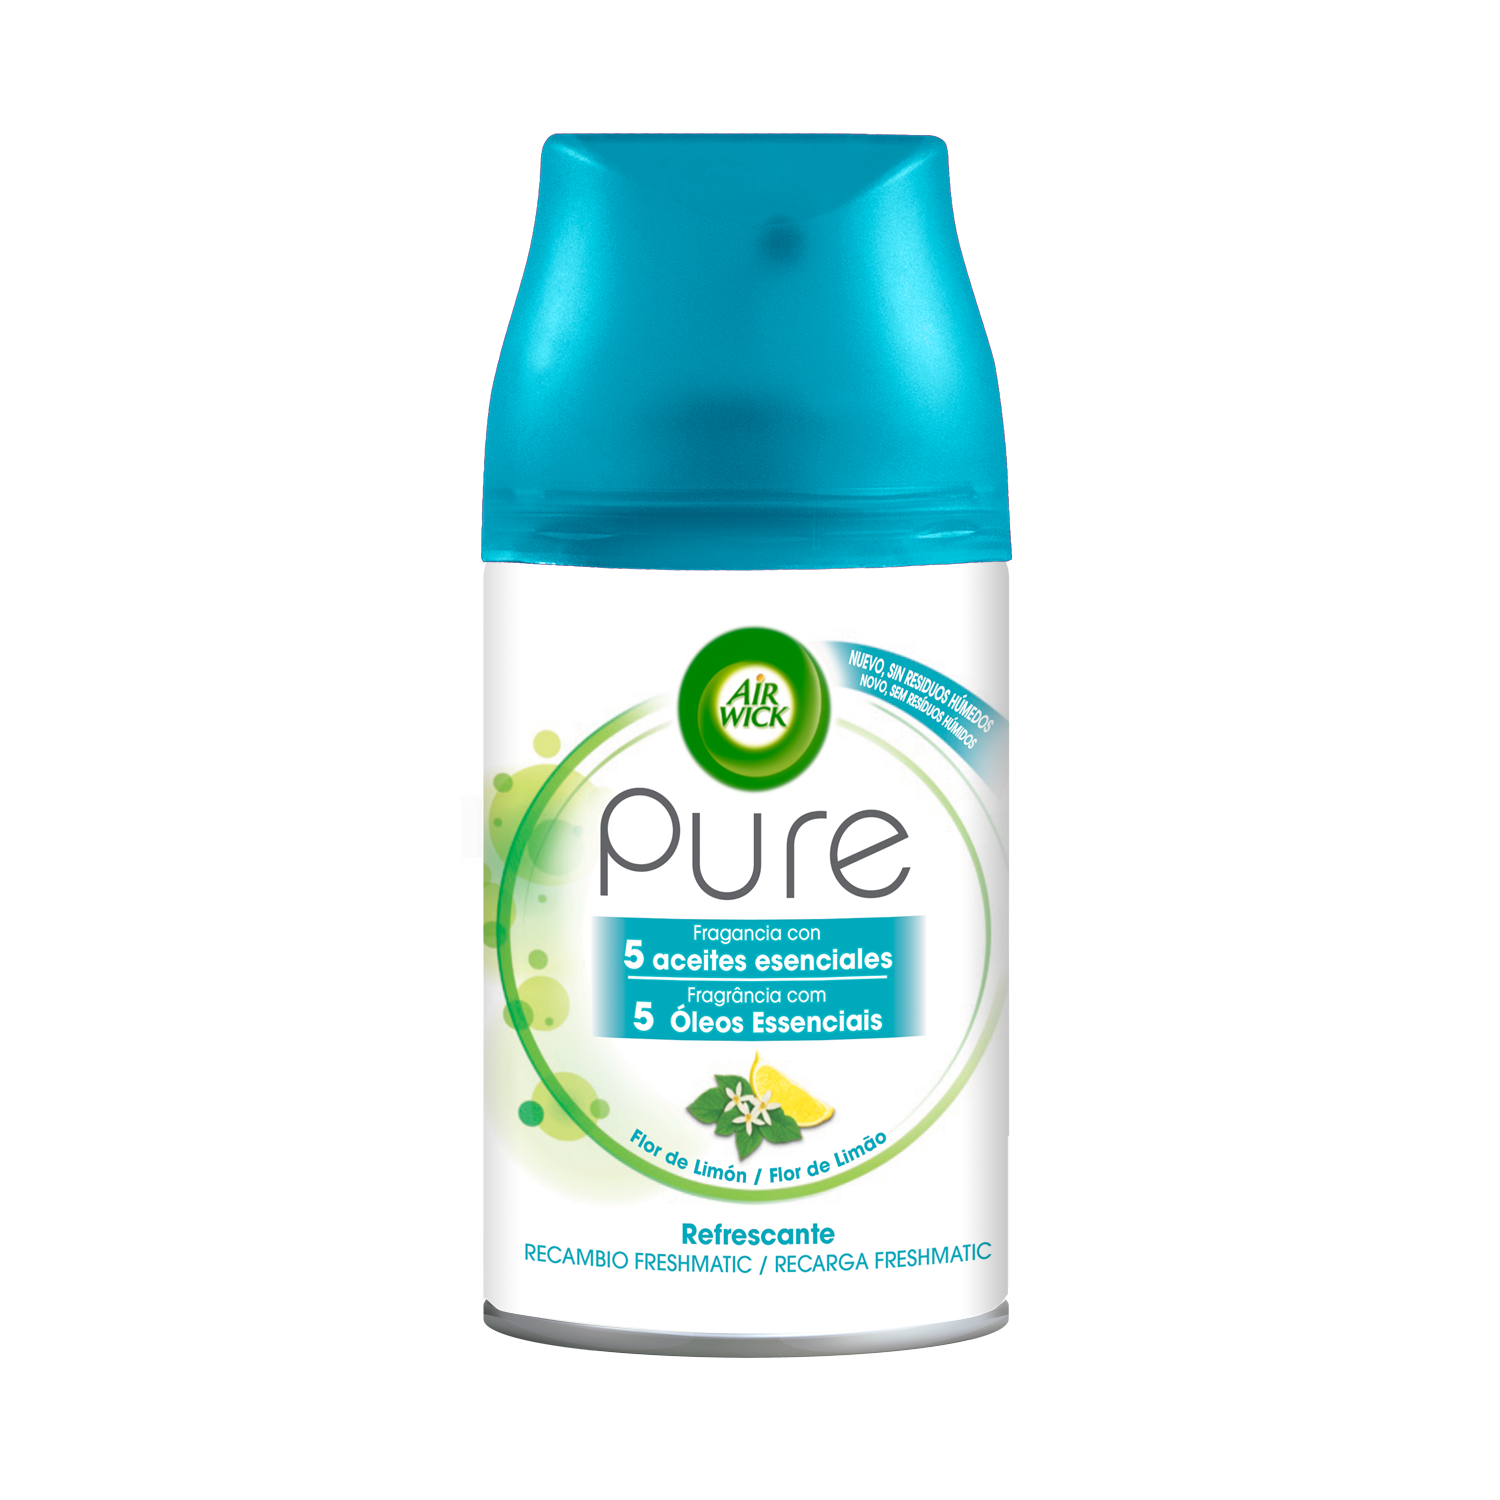 Air Wick recambio fresh matic pure refrescante flor limon de 25cl.